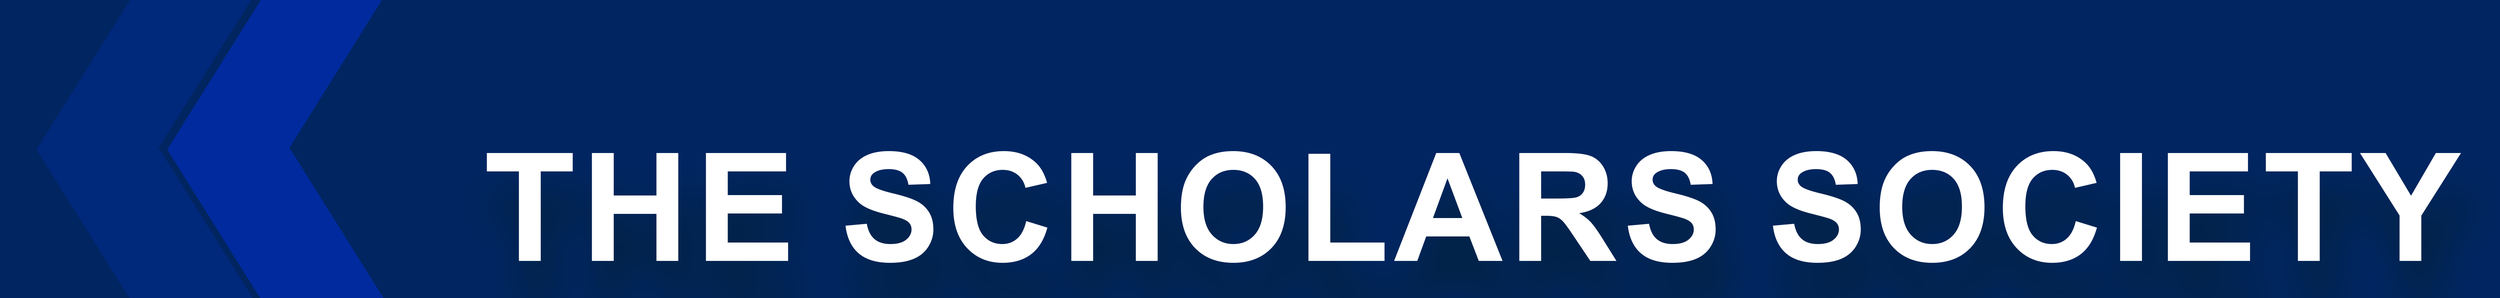 The Scholars Society Page banner